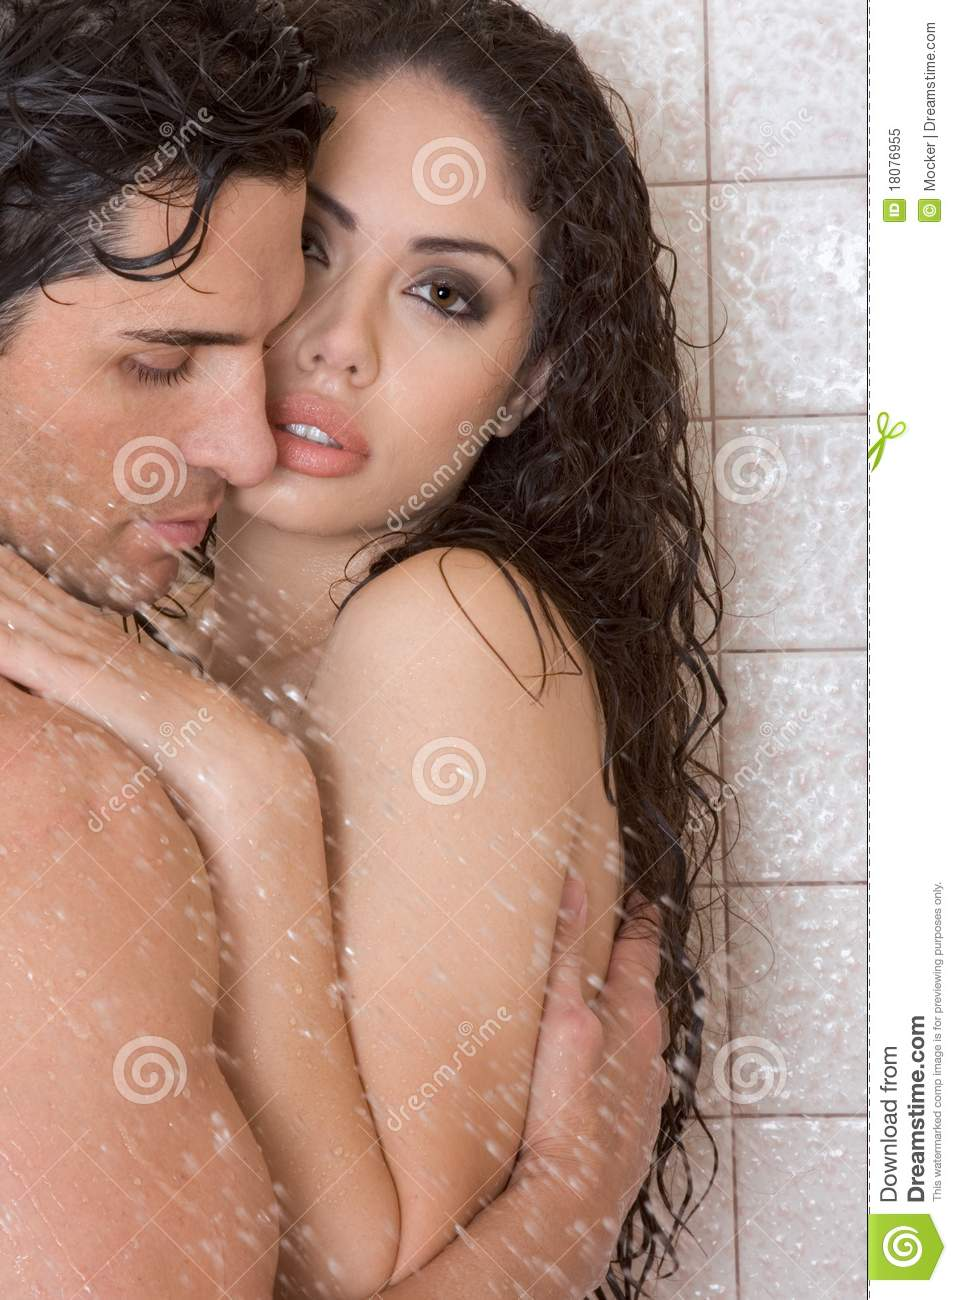 Pictures of naked latina women in shower